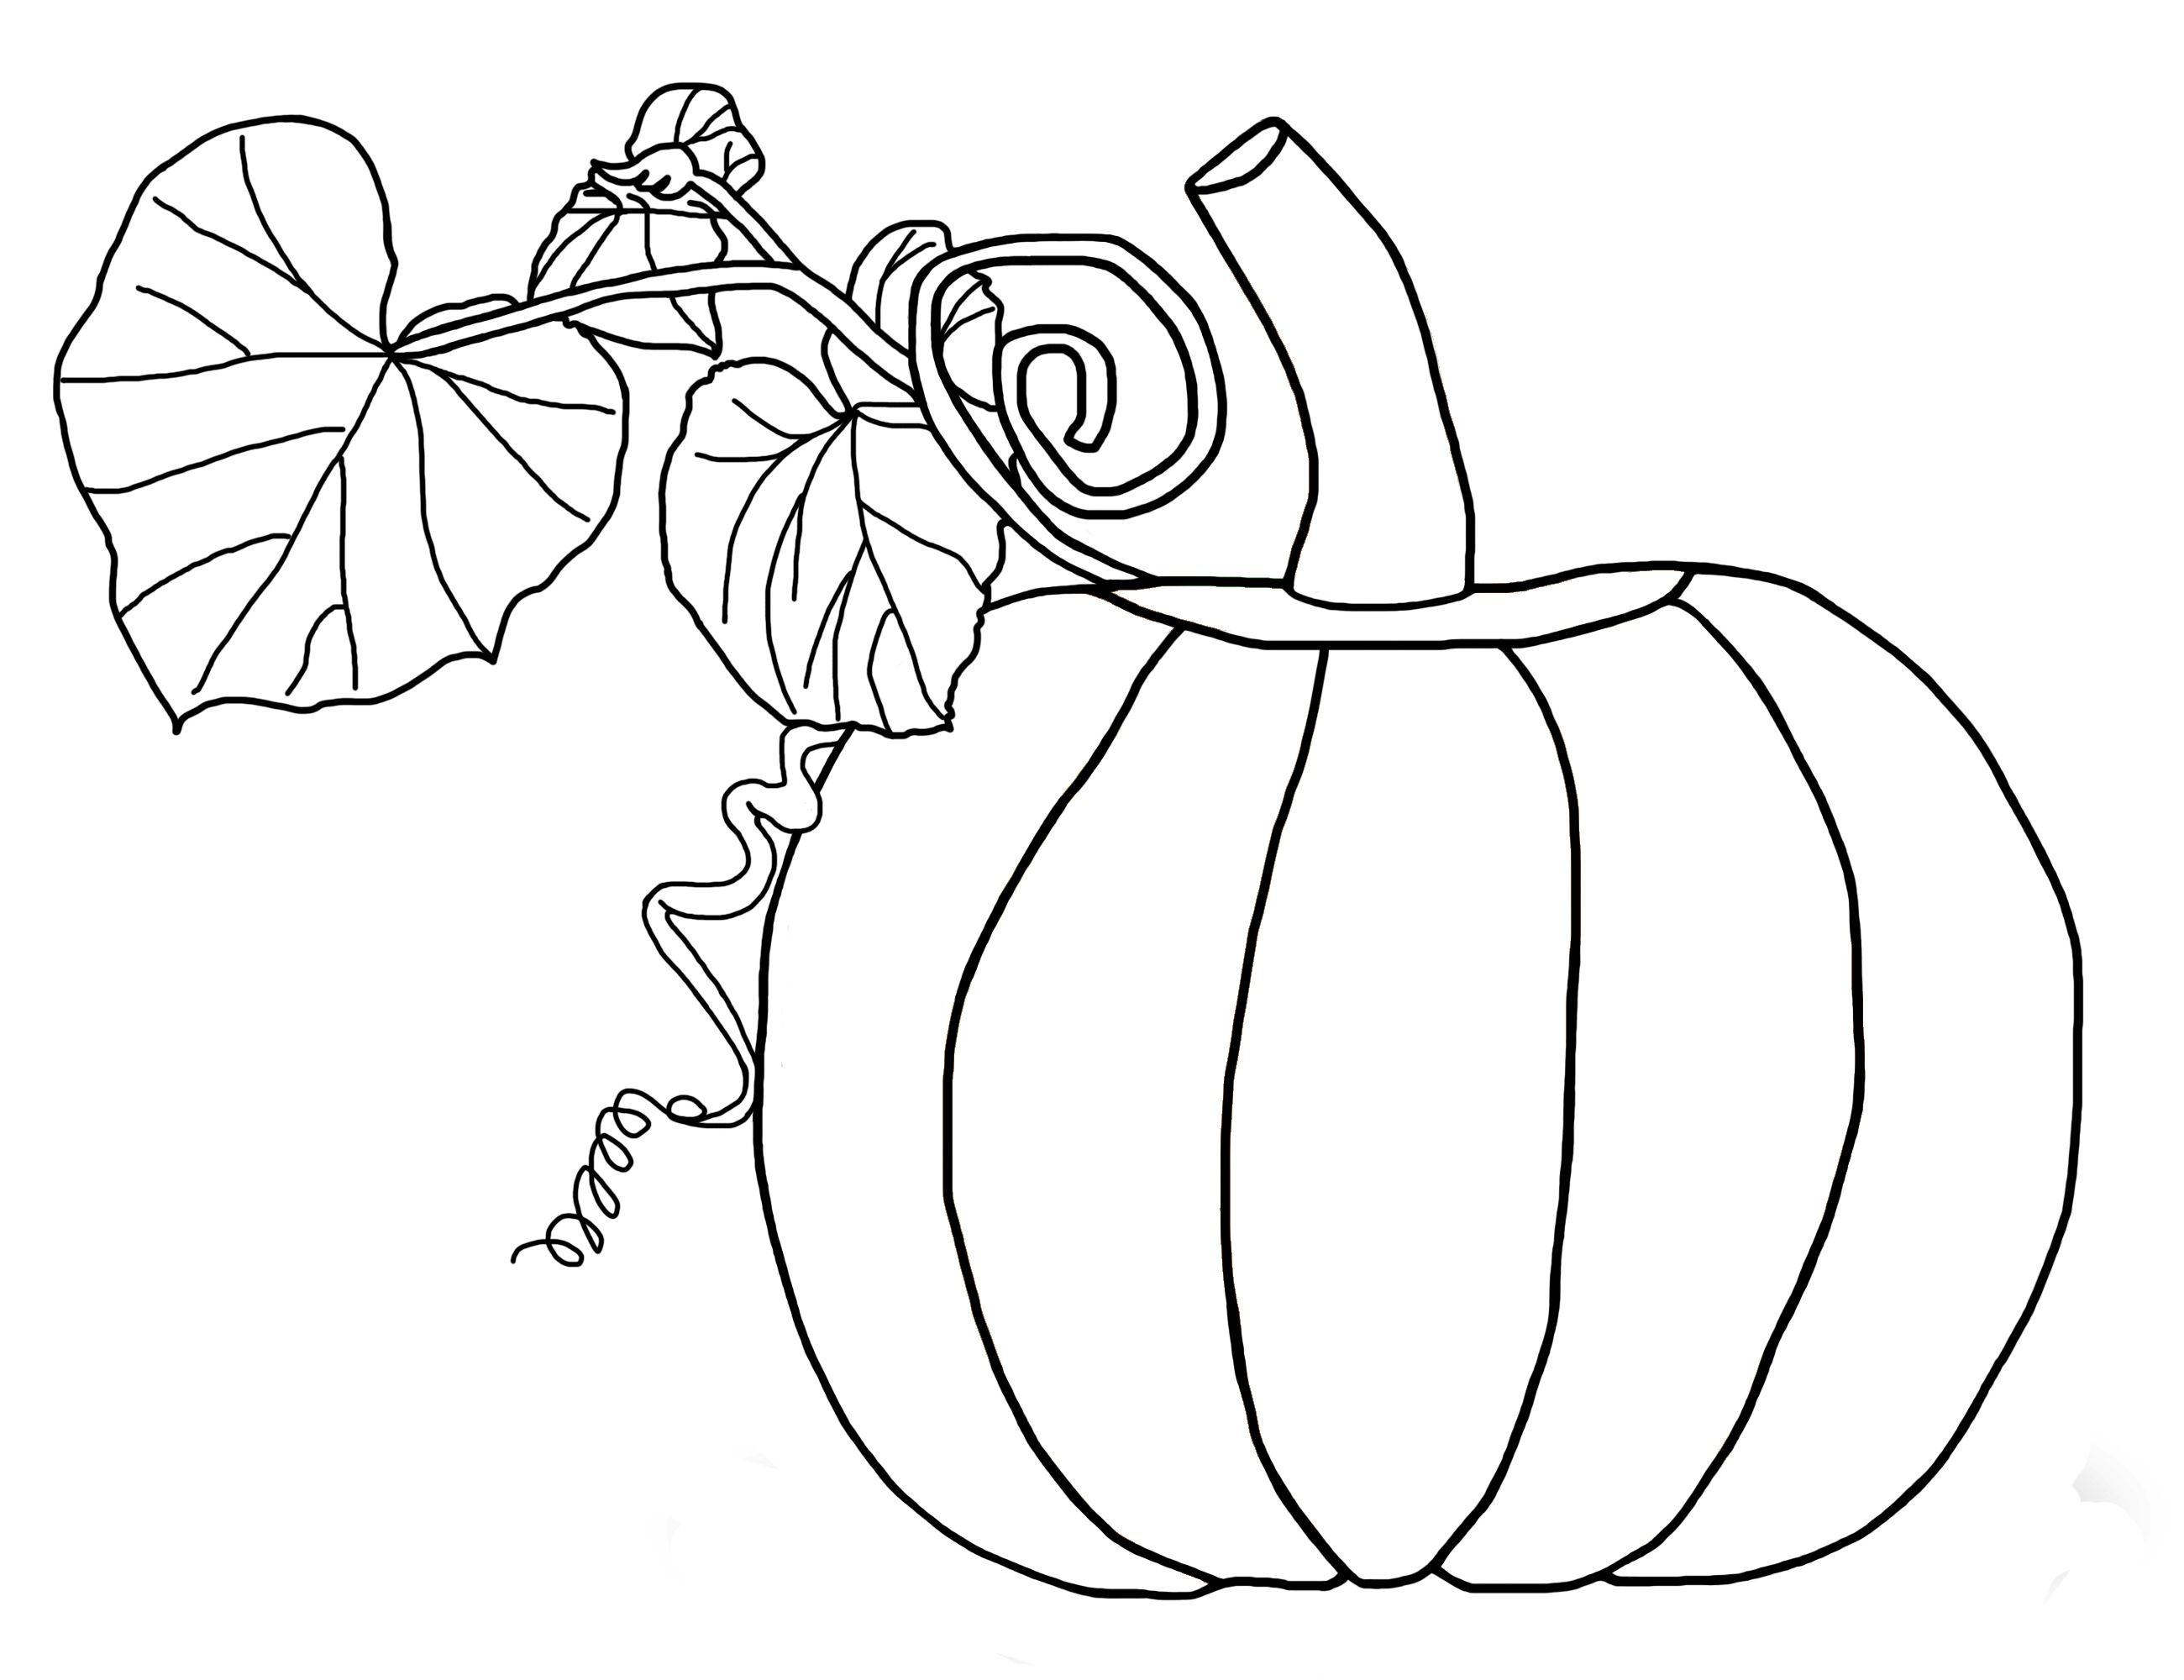 the pumpkin and leaves coloring pages